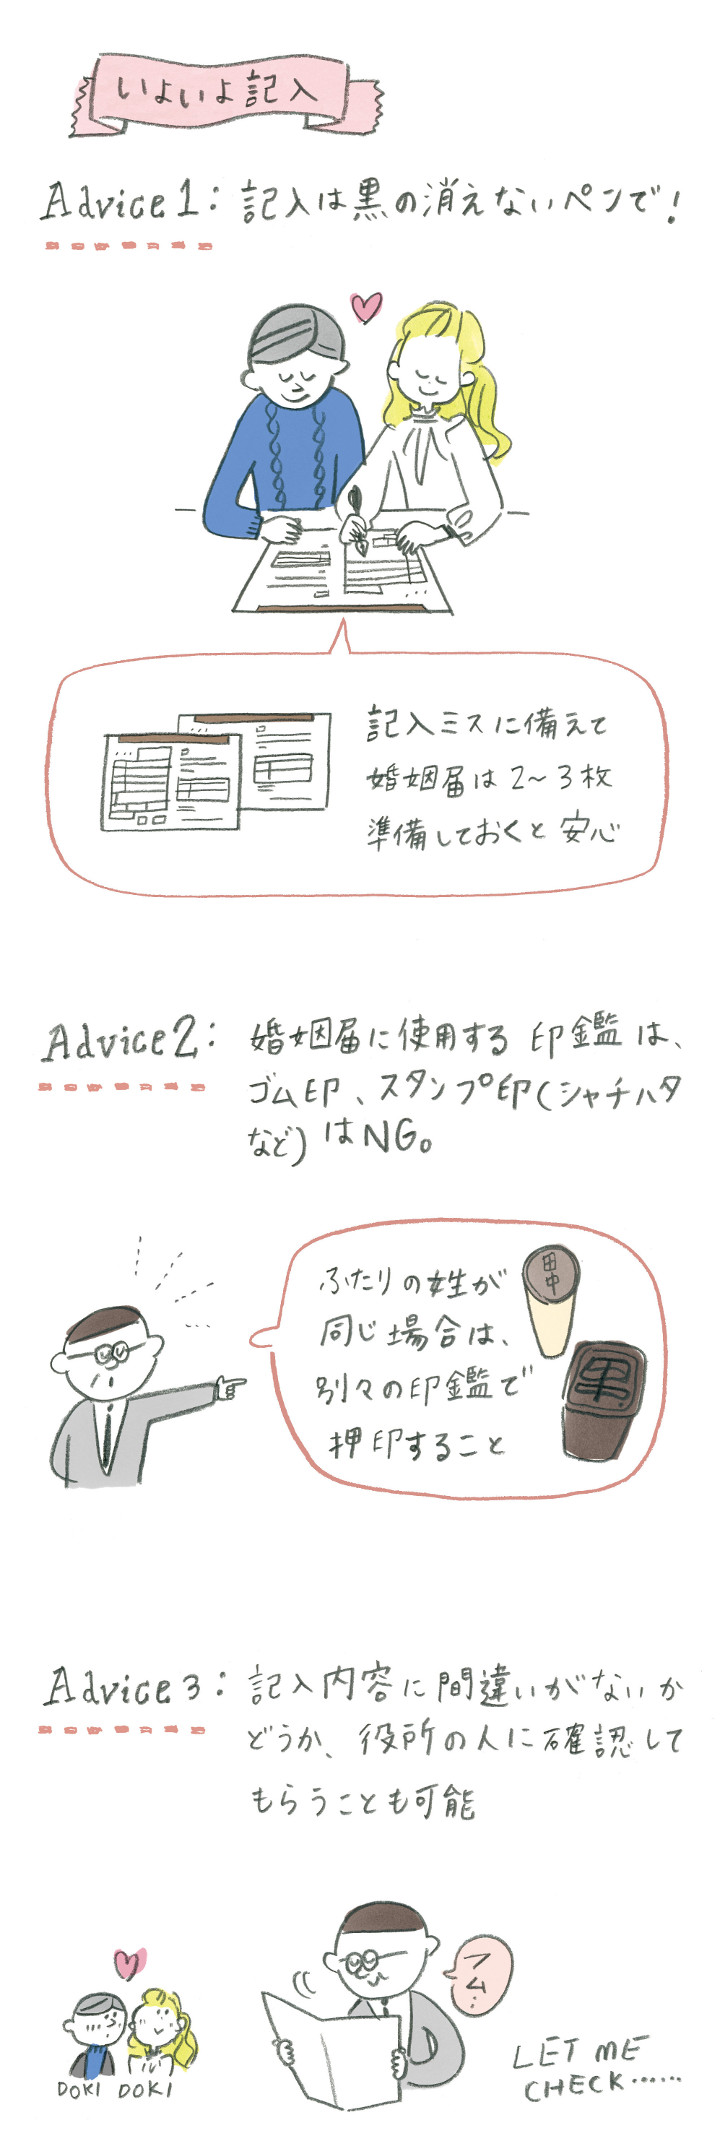 STEP3. 婚姻届に記入